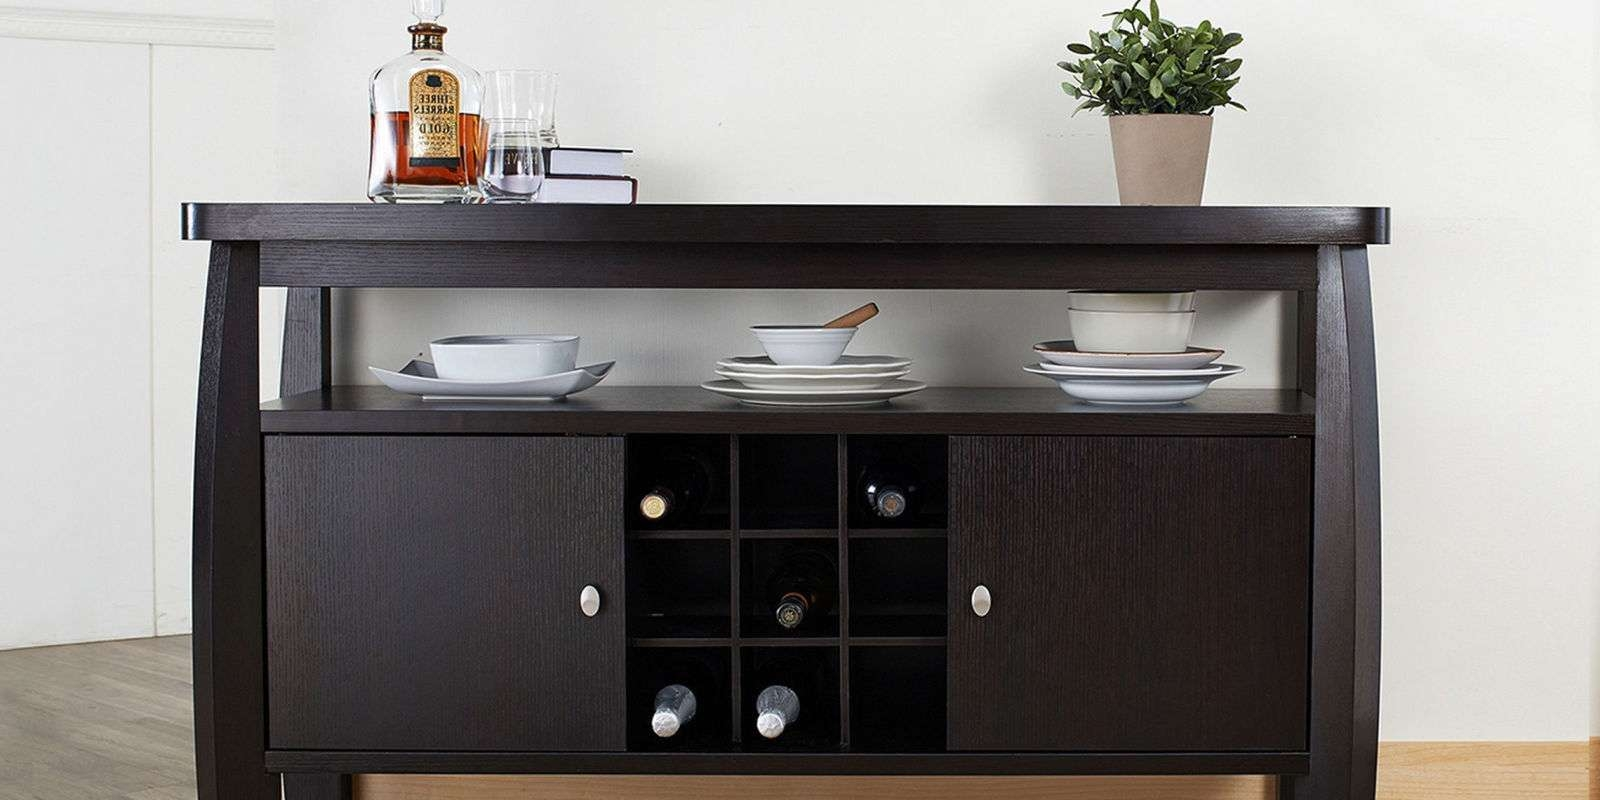 11 Best Sideboards And Buffets In 2018 – Reviews Of Sideboards Within Dining Sideboards (View 1 of 20)